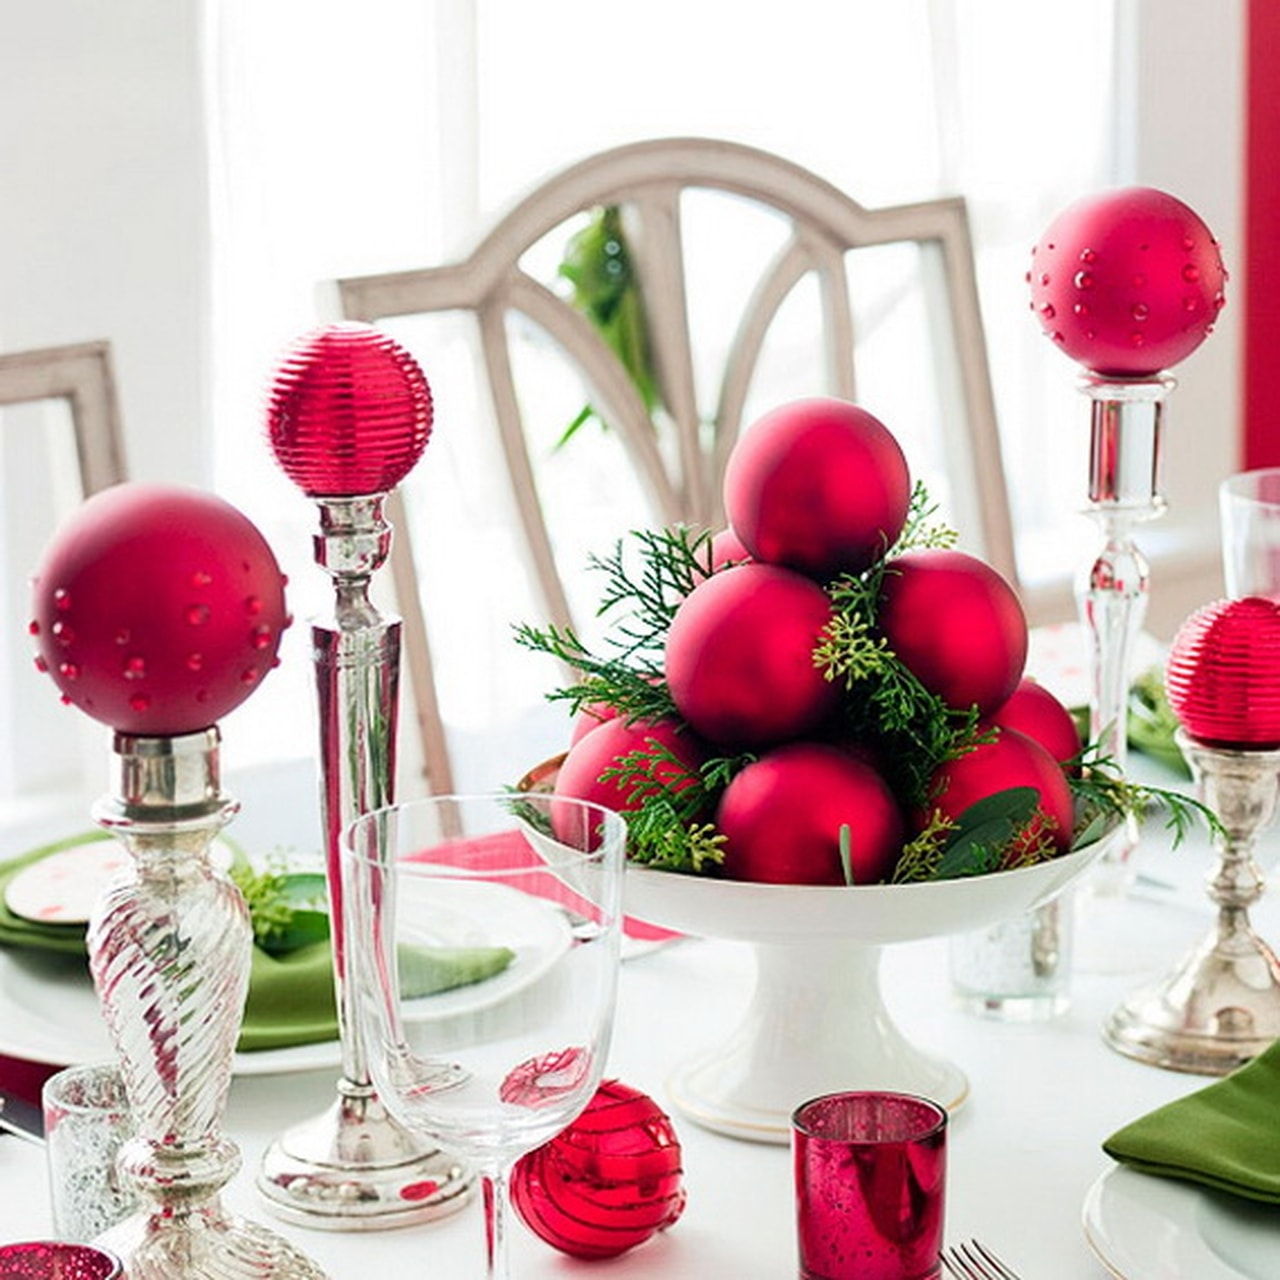 Fun Christmas Table Decorations: 50 Best DIY Christmas Table Decoration Ideas For 2016